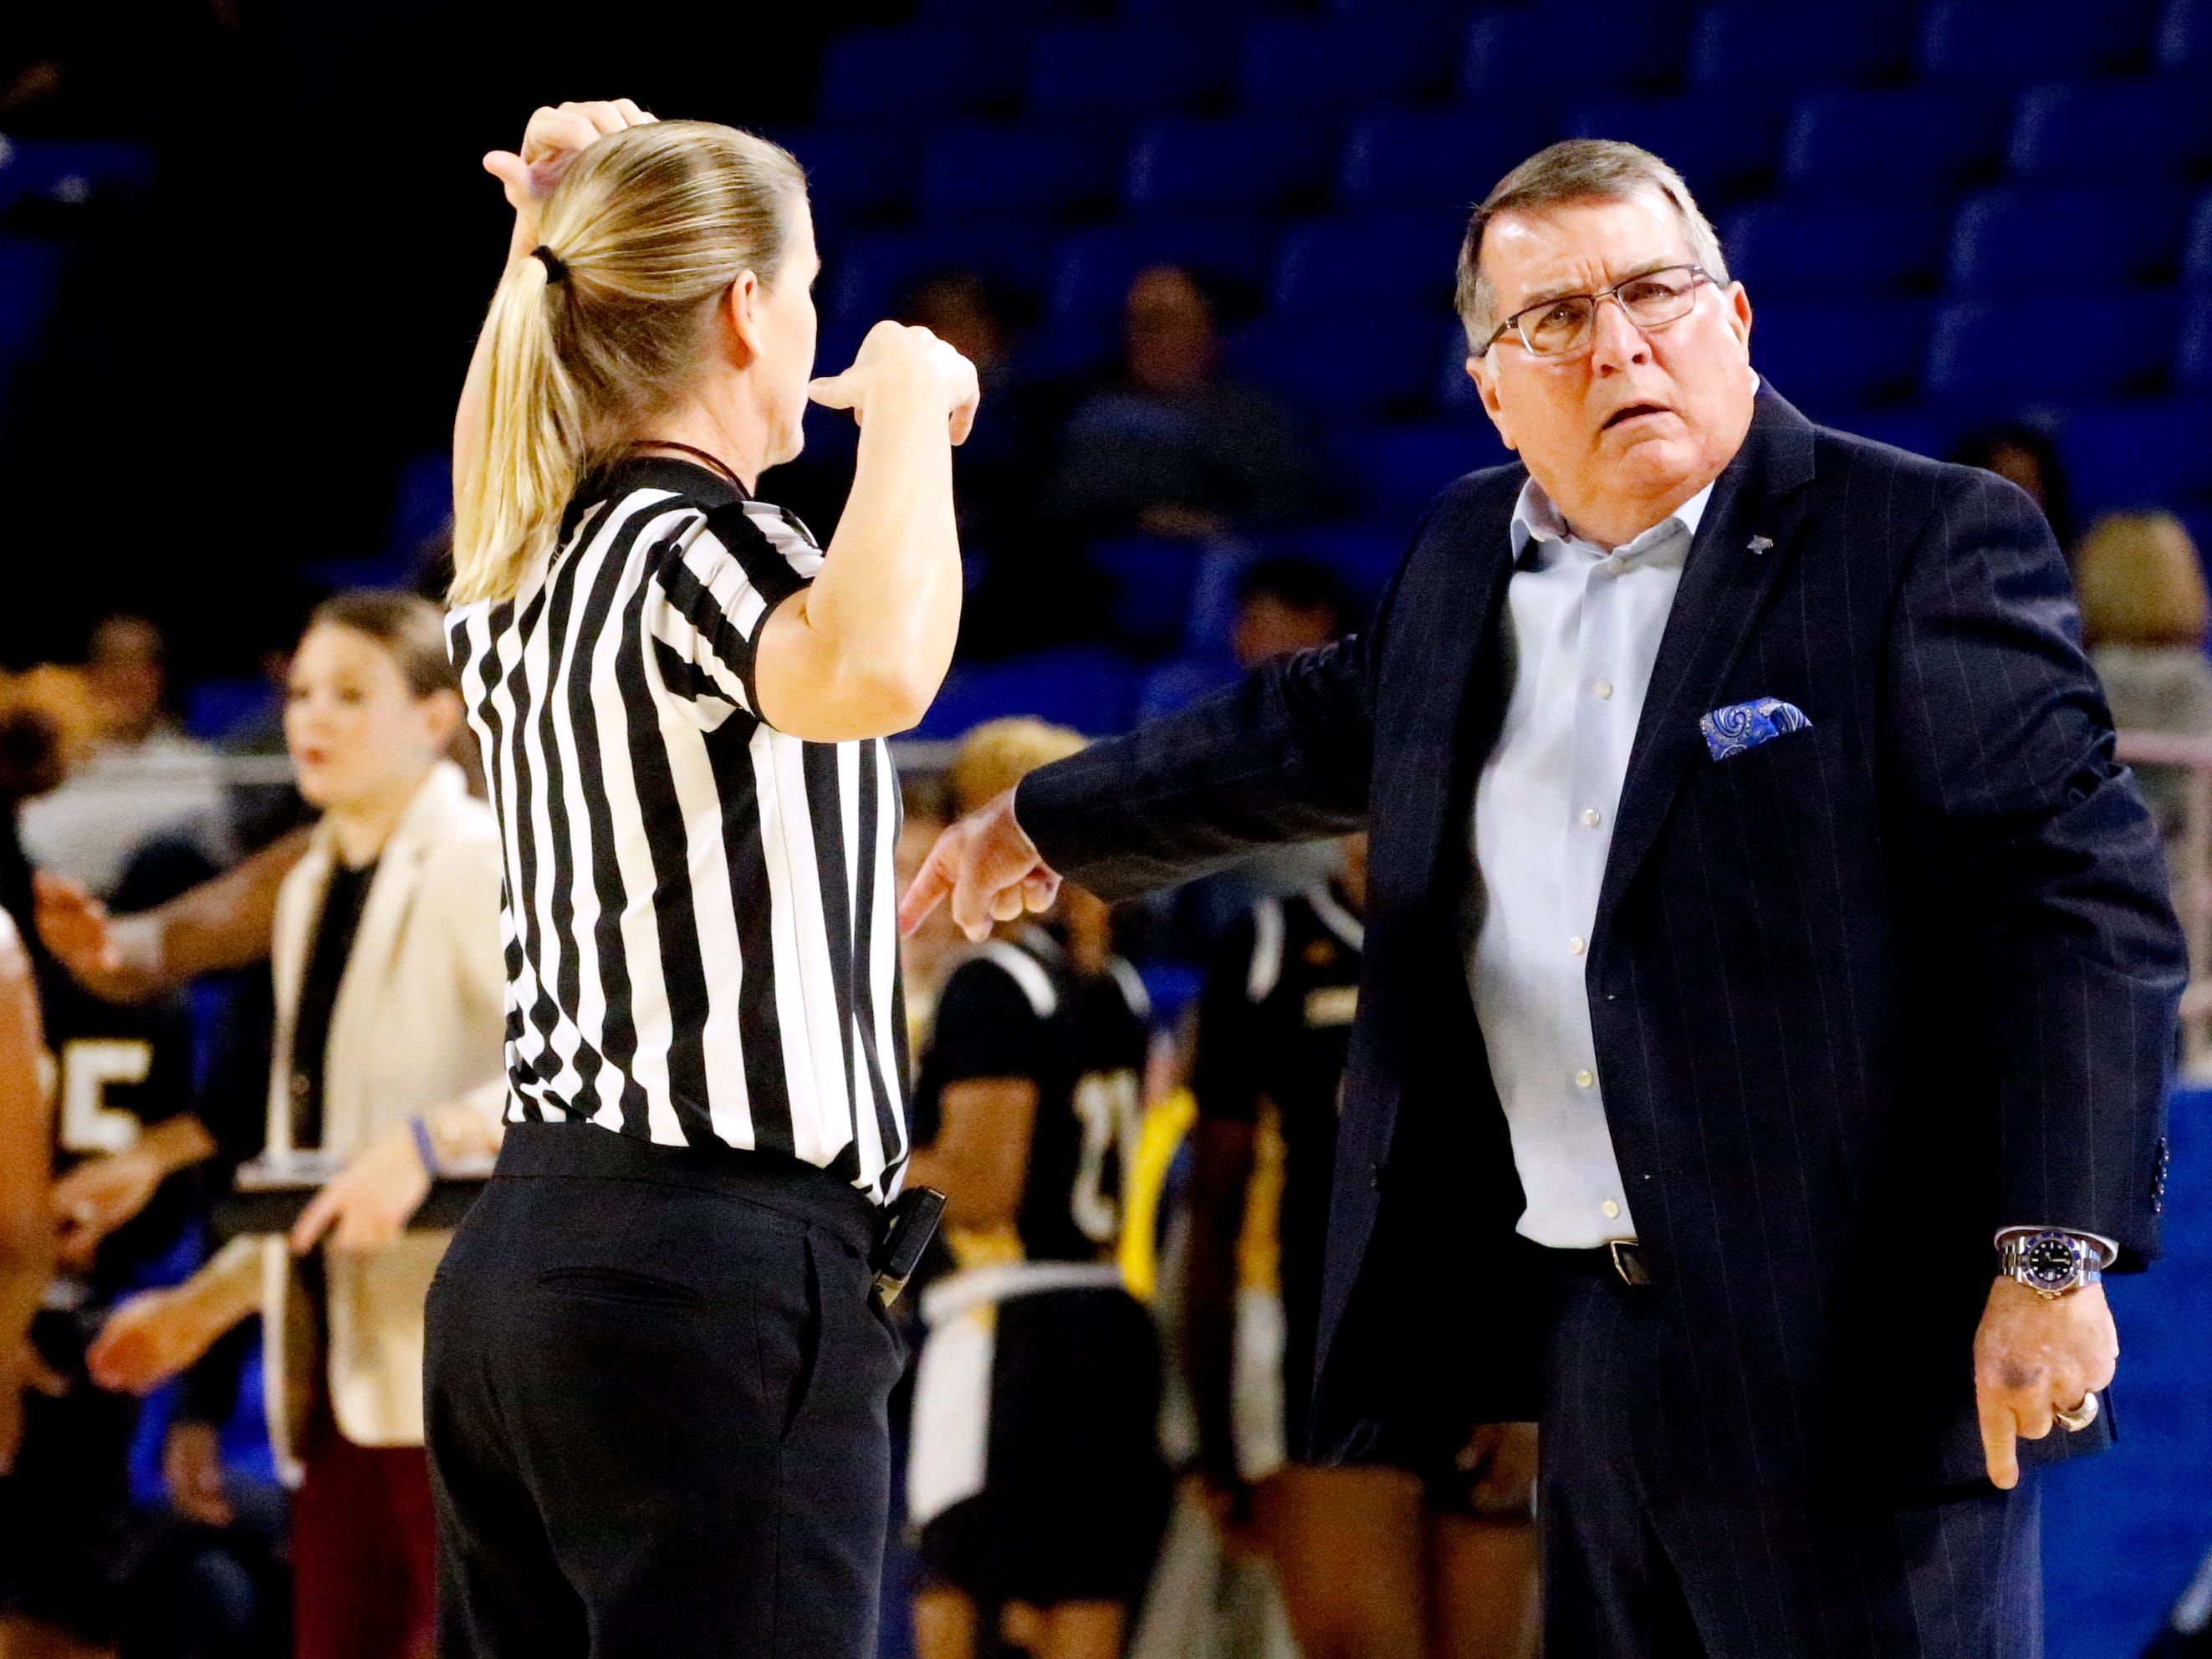 MTSU's head coach Rick Insell argues a during a time-out during the game against Southern Miss on Thursday Jan. 10, 2019.